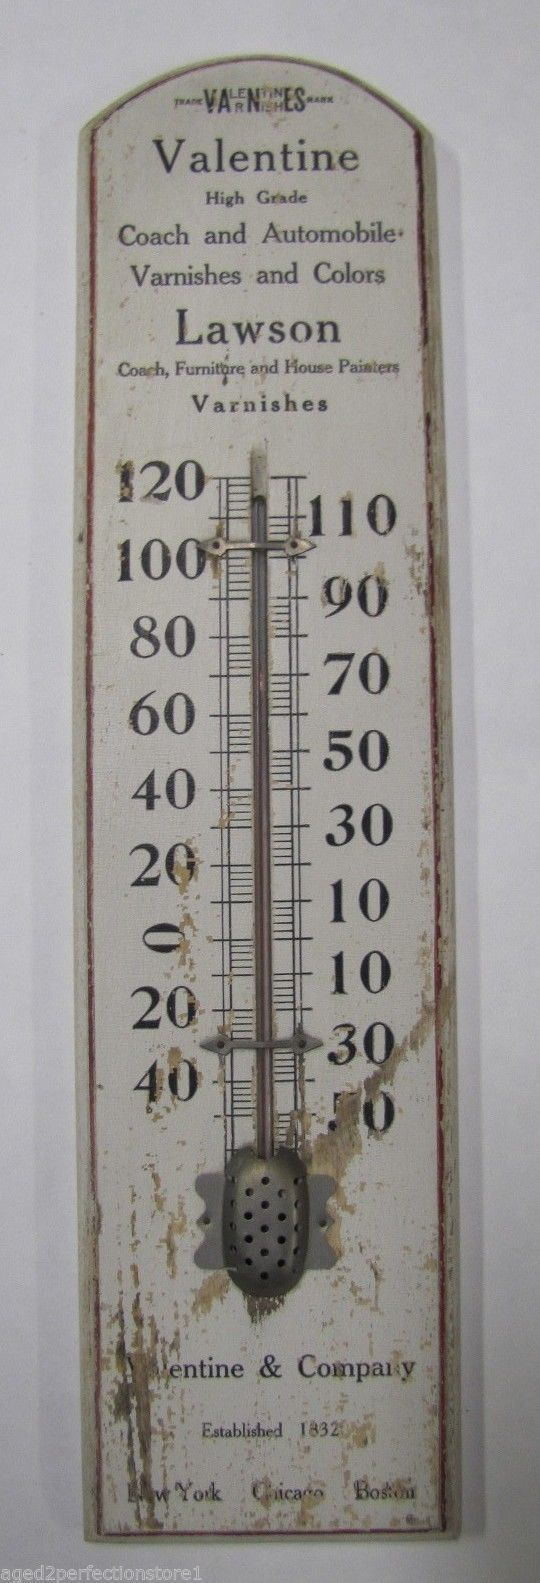 Antique Valentine Co Coach Auto Varnish Color Advertising Thermometer Sign TOC | eBay